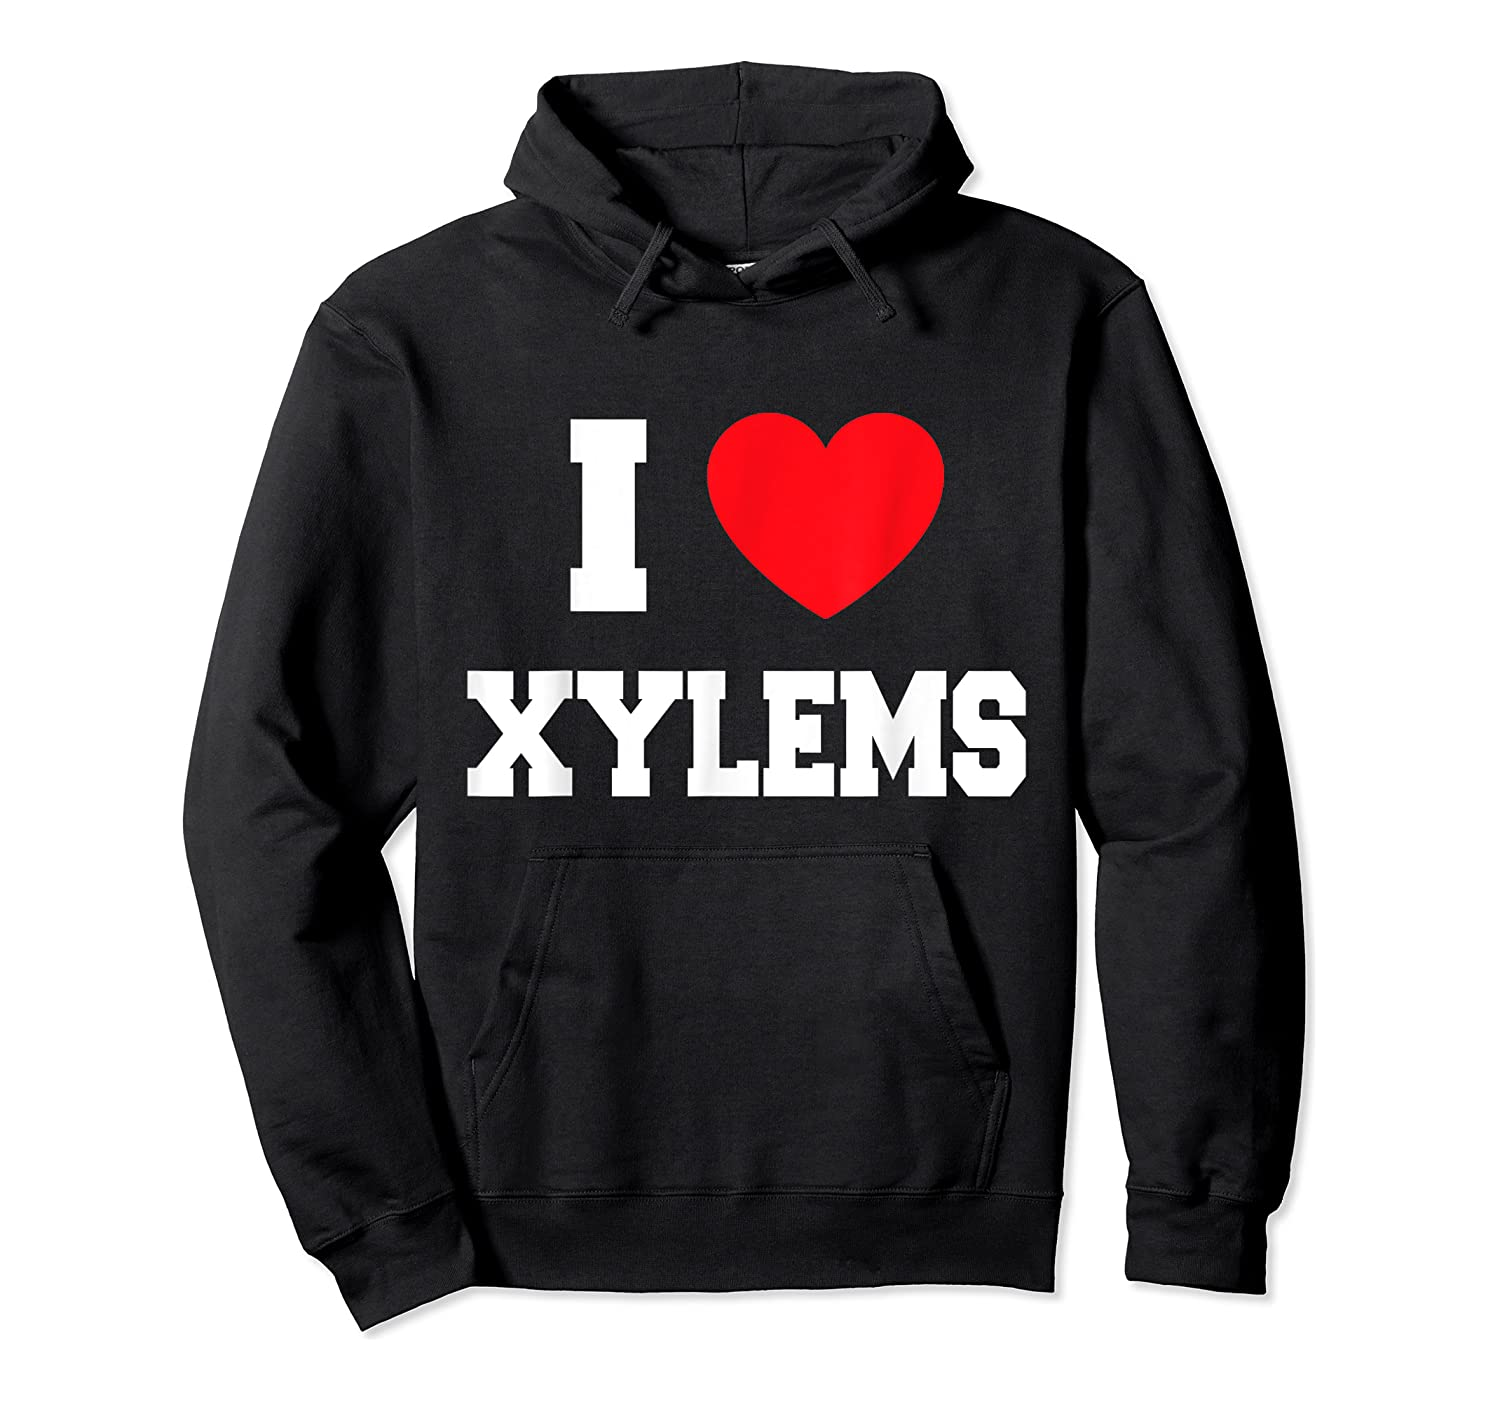 Love Xylems Shirts Unisex Pullover Hoodie